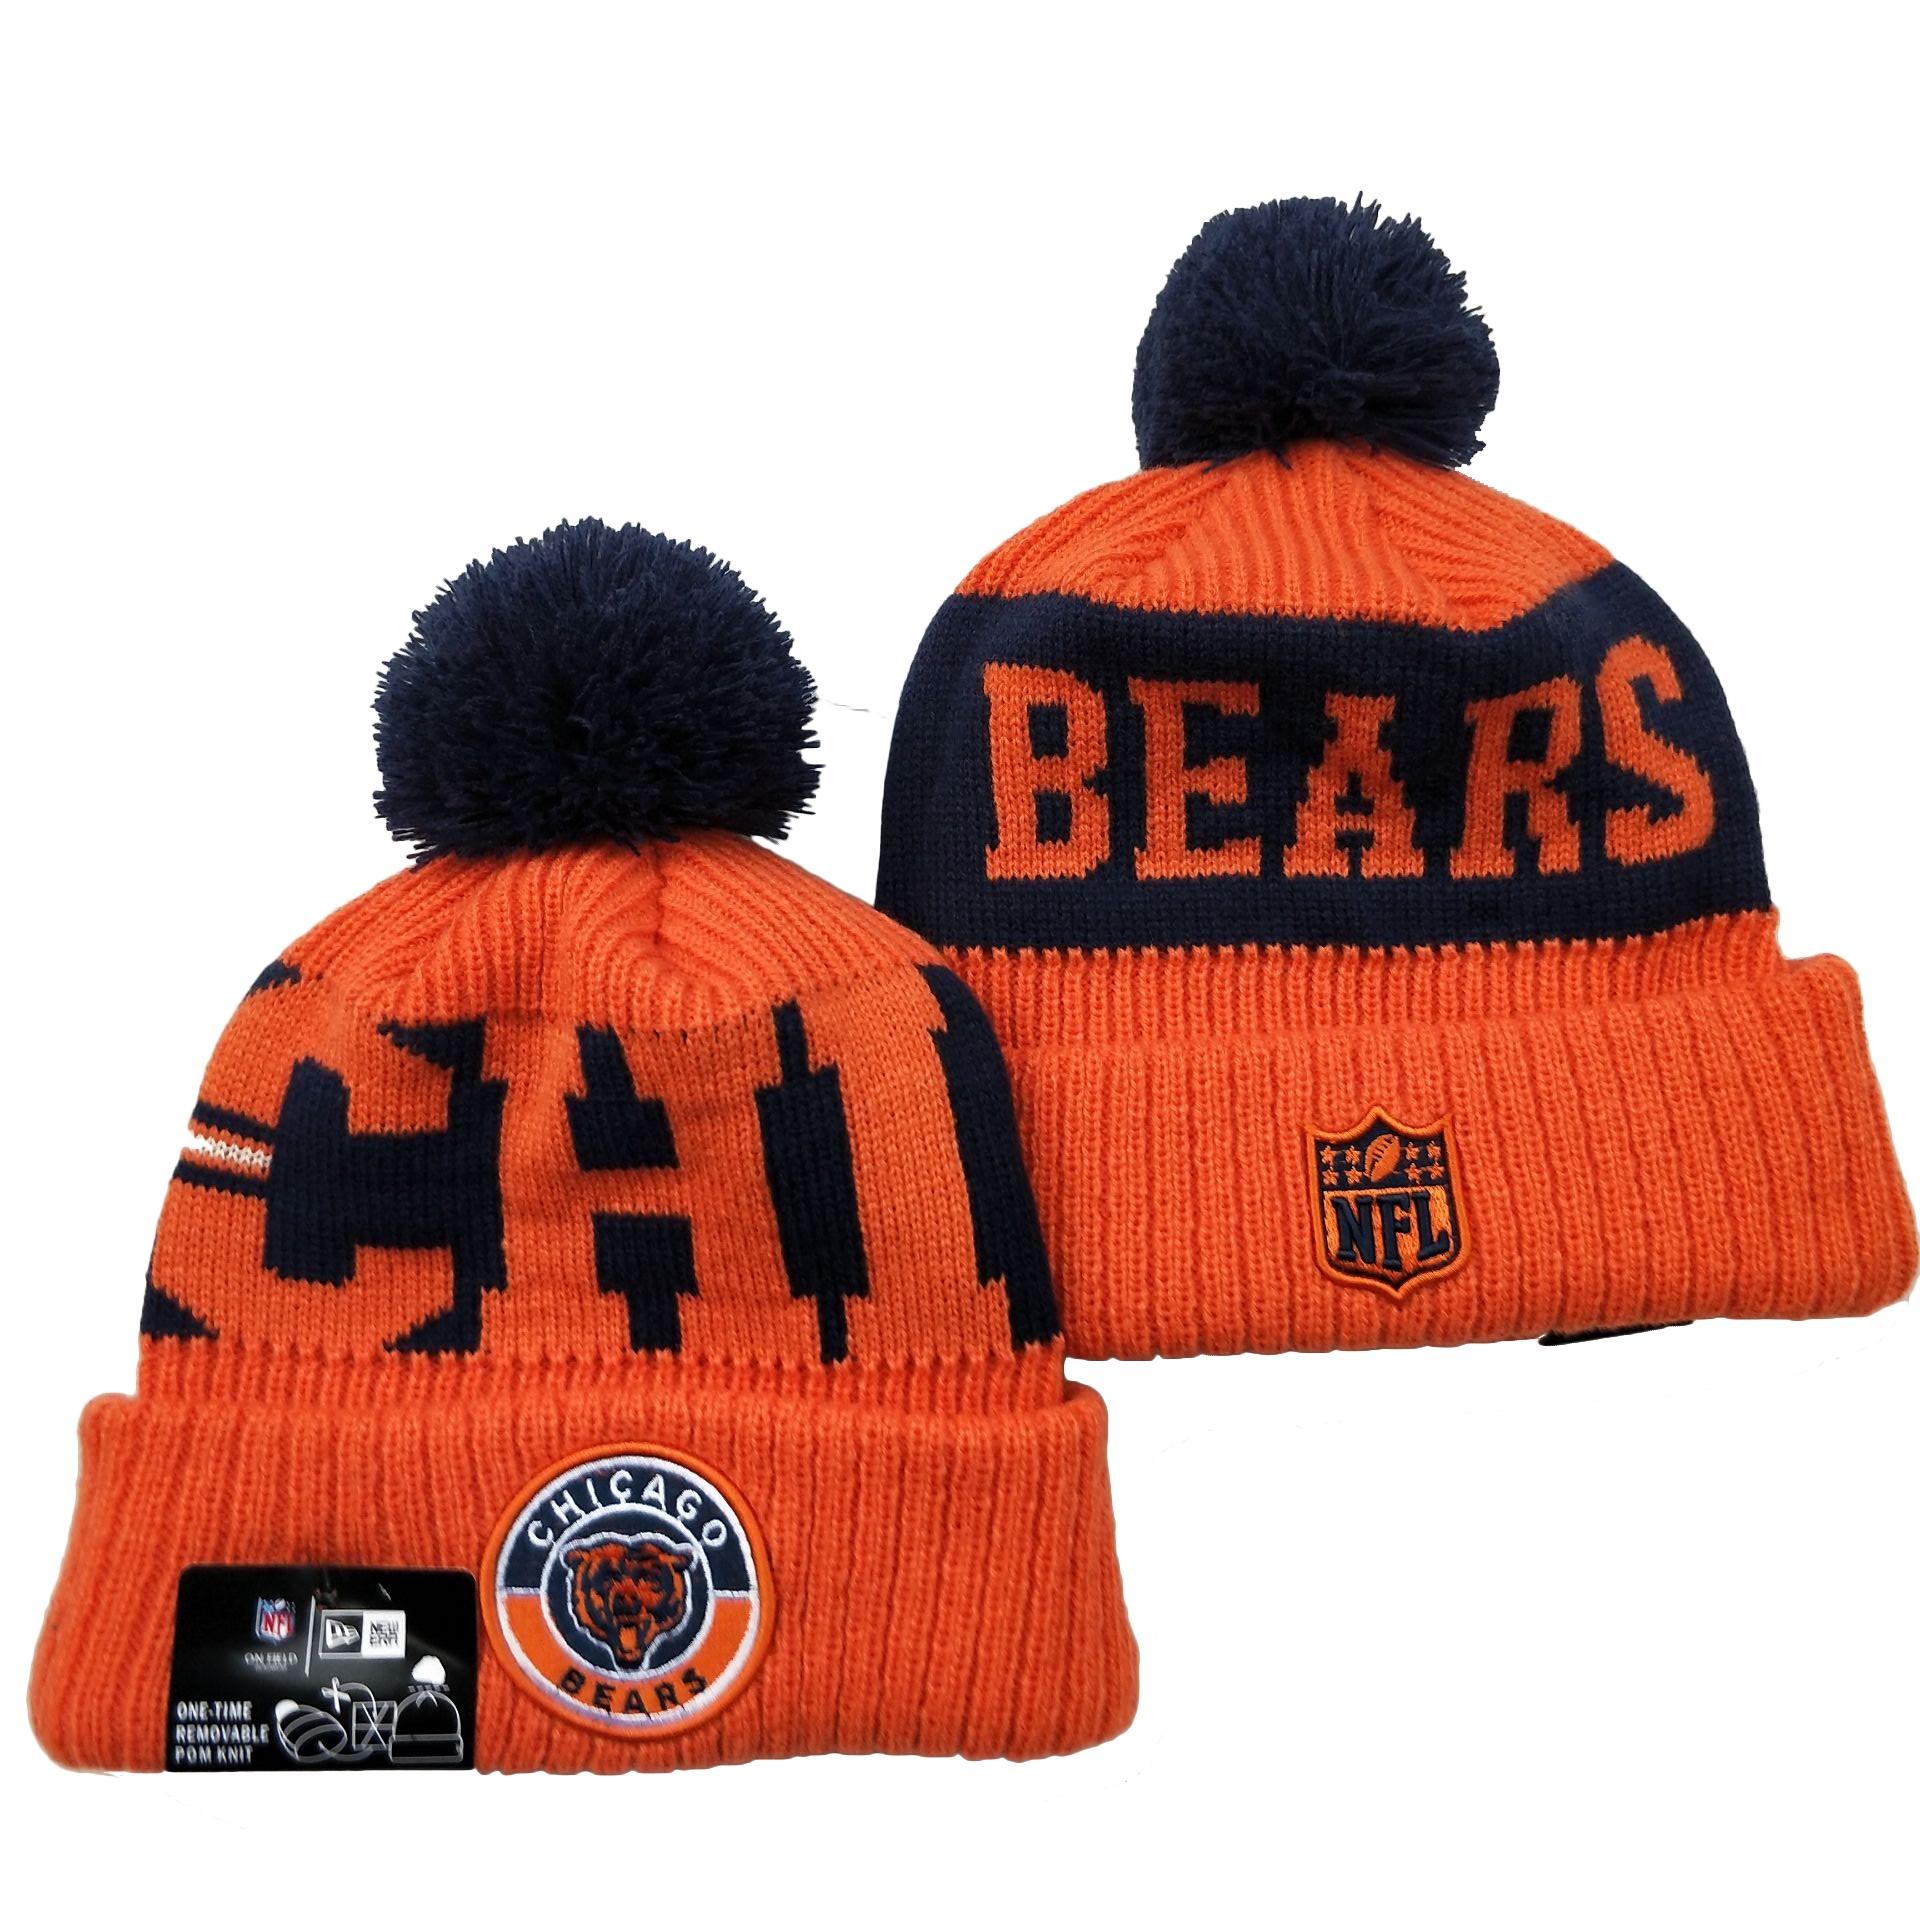 Bears Team Logo Orange 2020 NFL Sideline Pom Cuffed Knit Hat YD